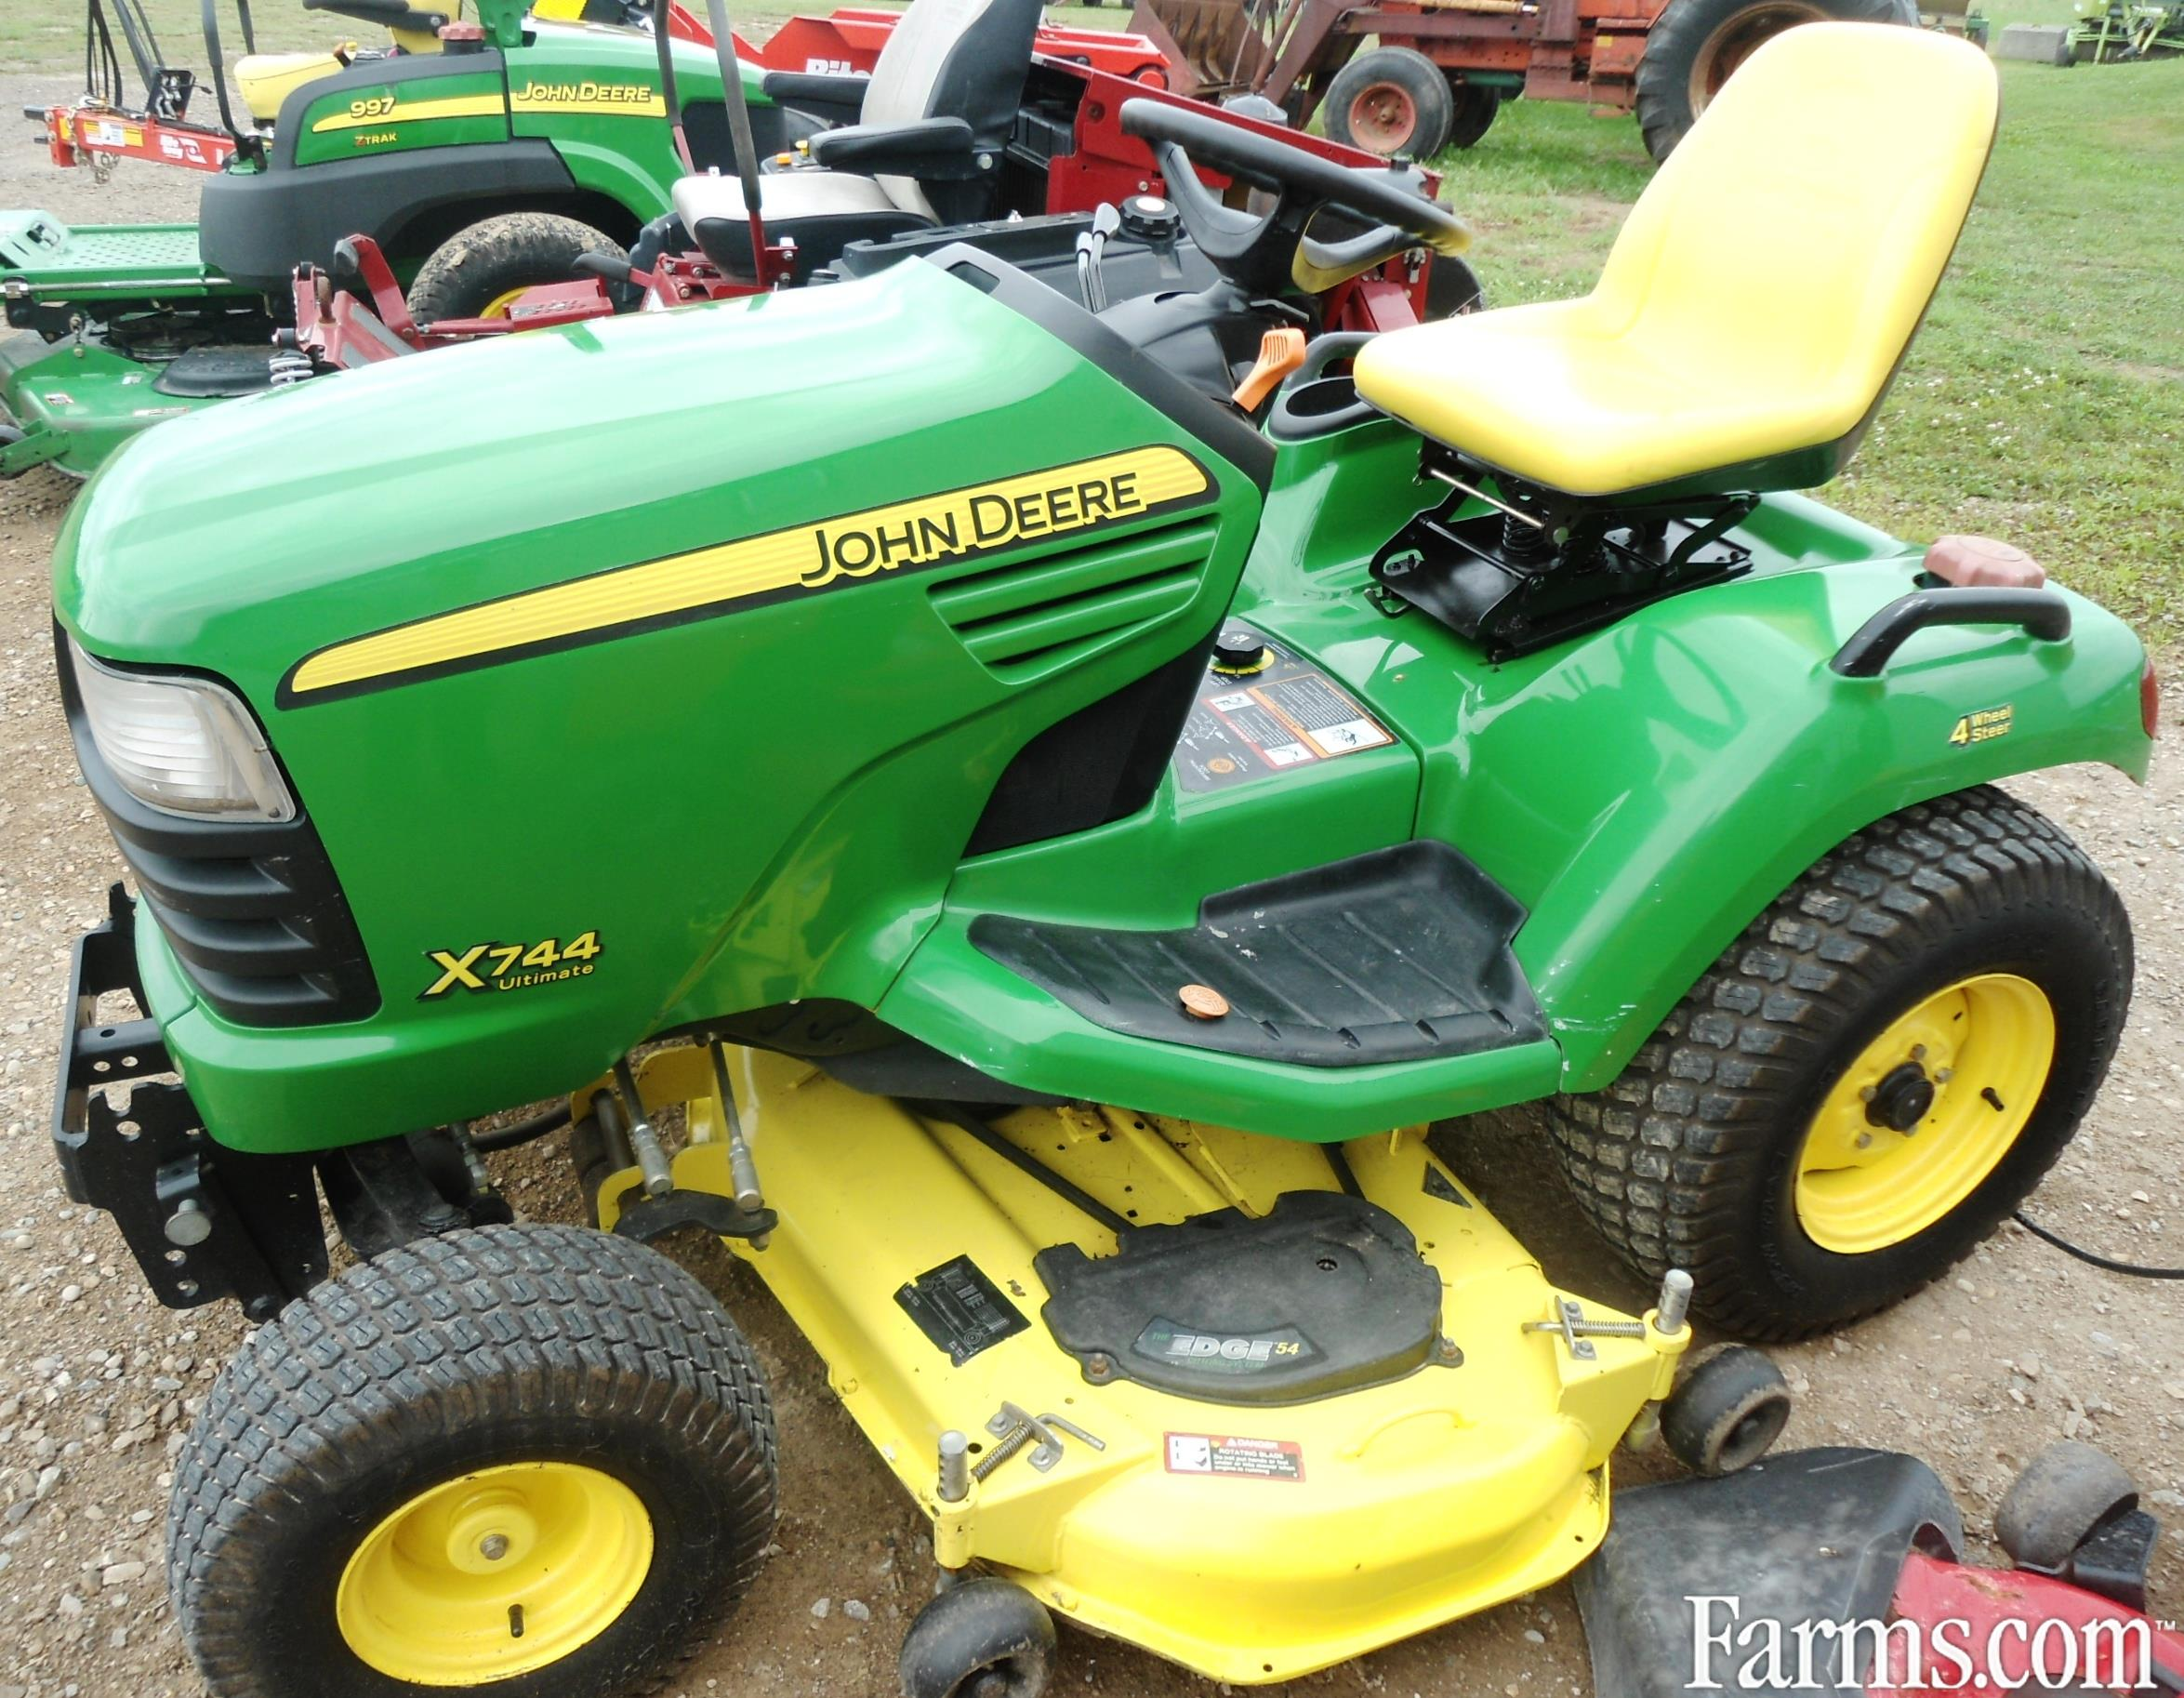 John deere x744 lawn tractor for sale for Used lawn and garden equipment